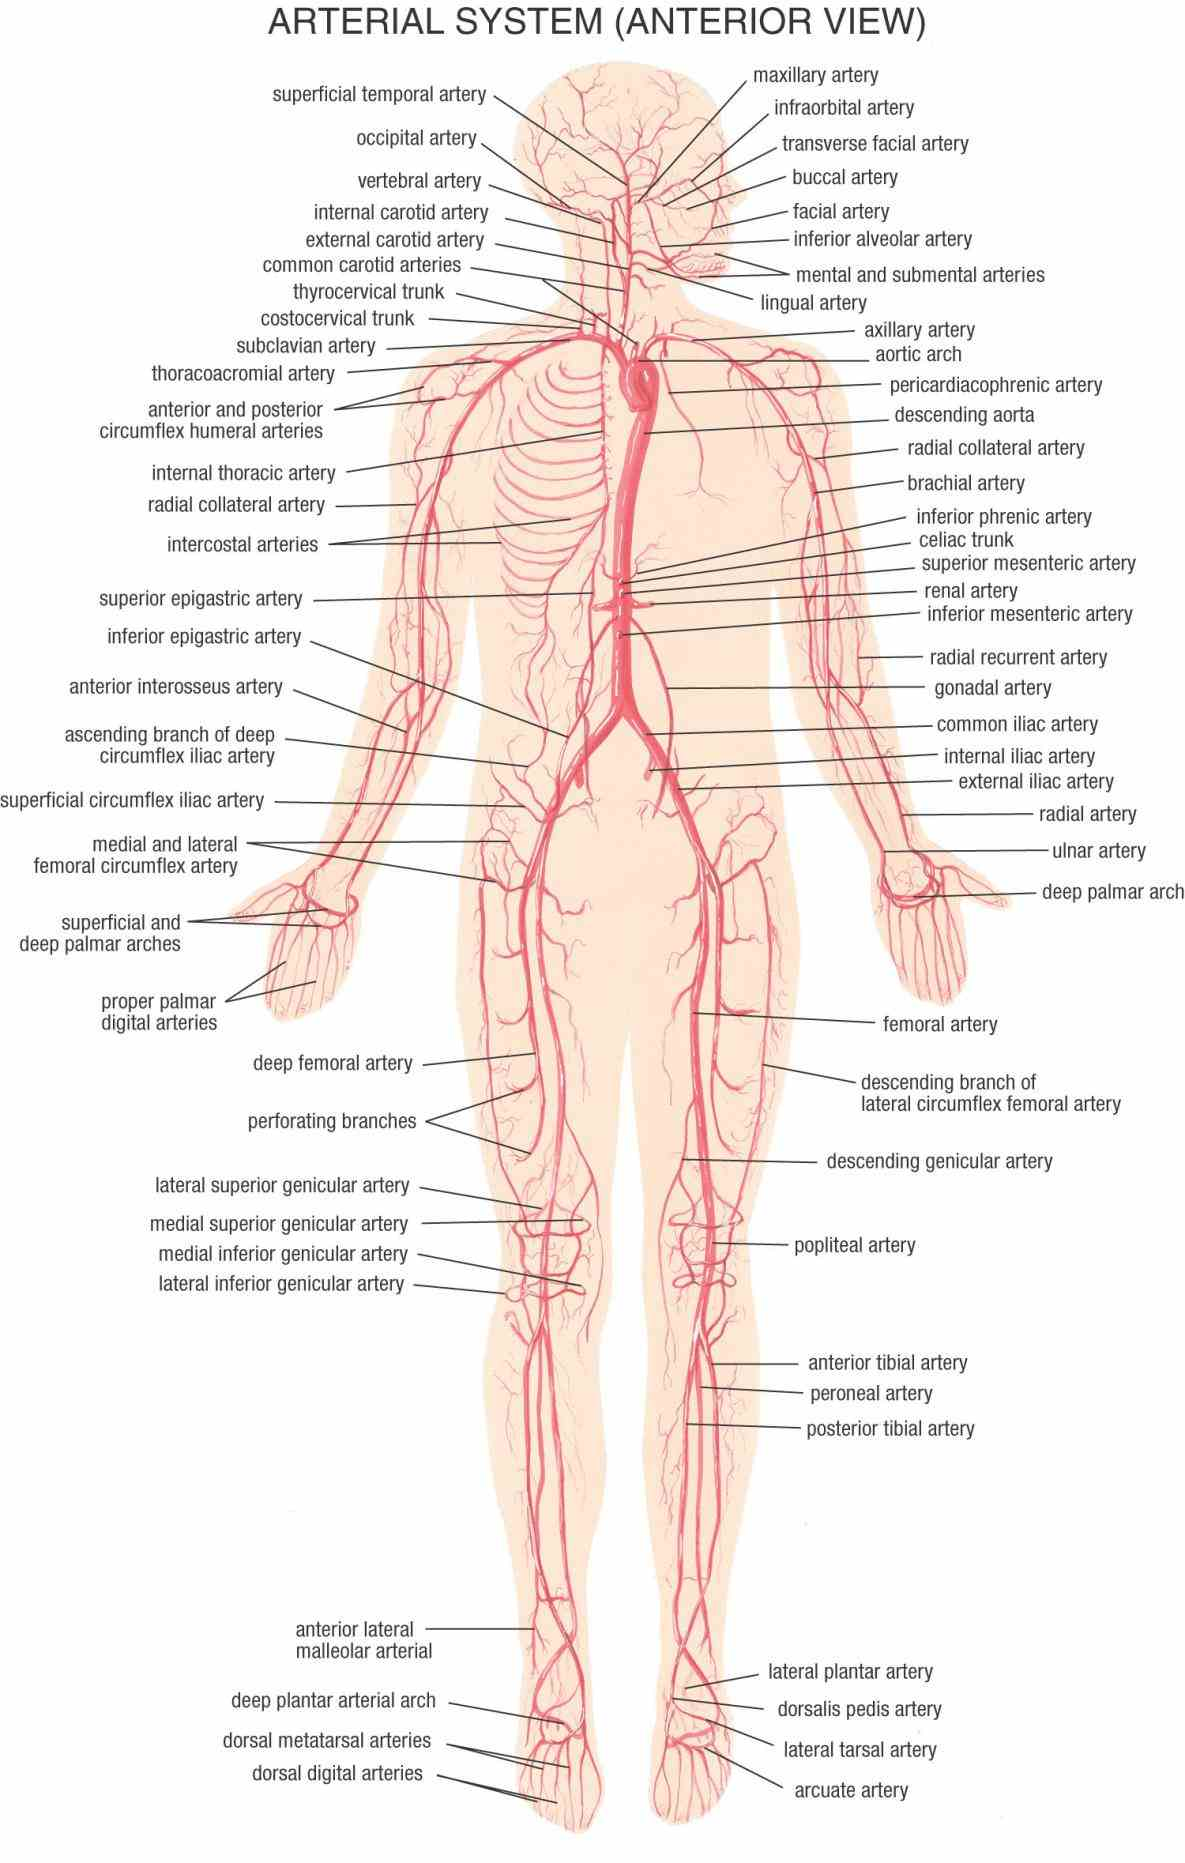 of vessels cerebral arterial circle willis letters arteries Labeled Vessels Of The Body of the body diagram · related